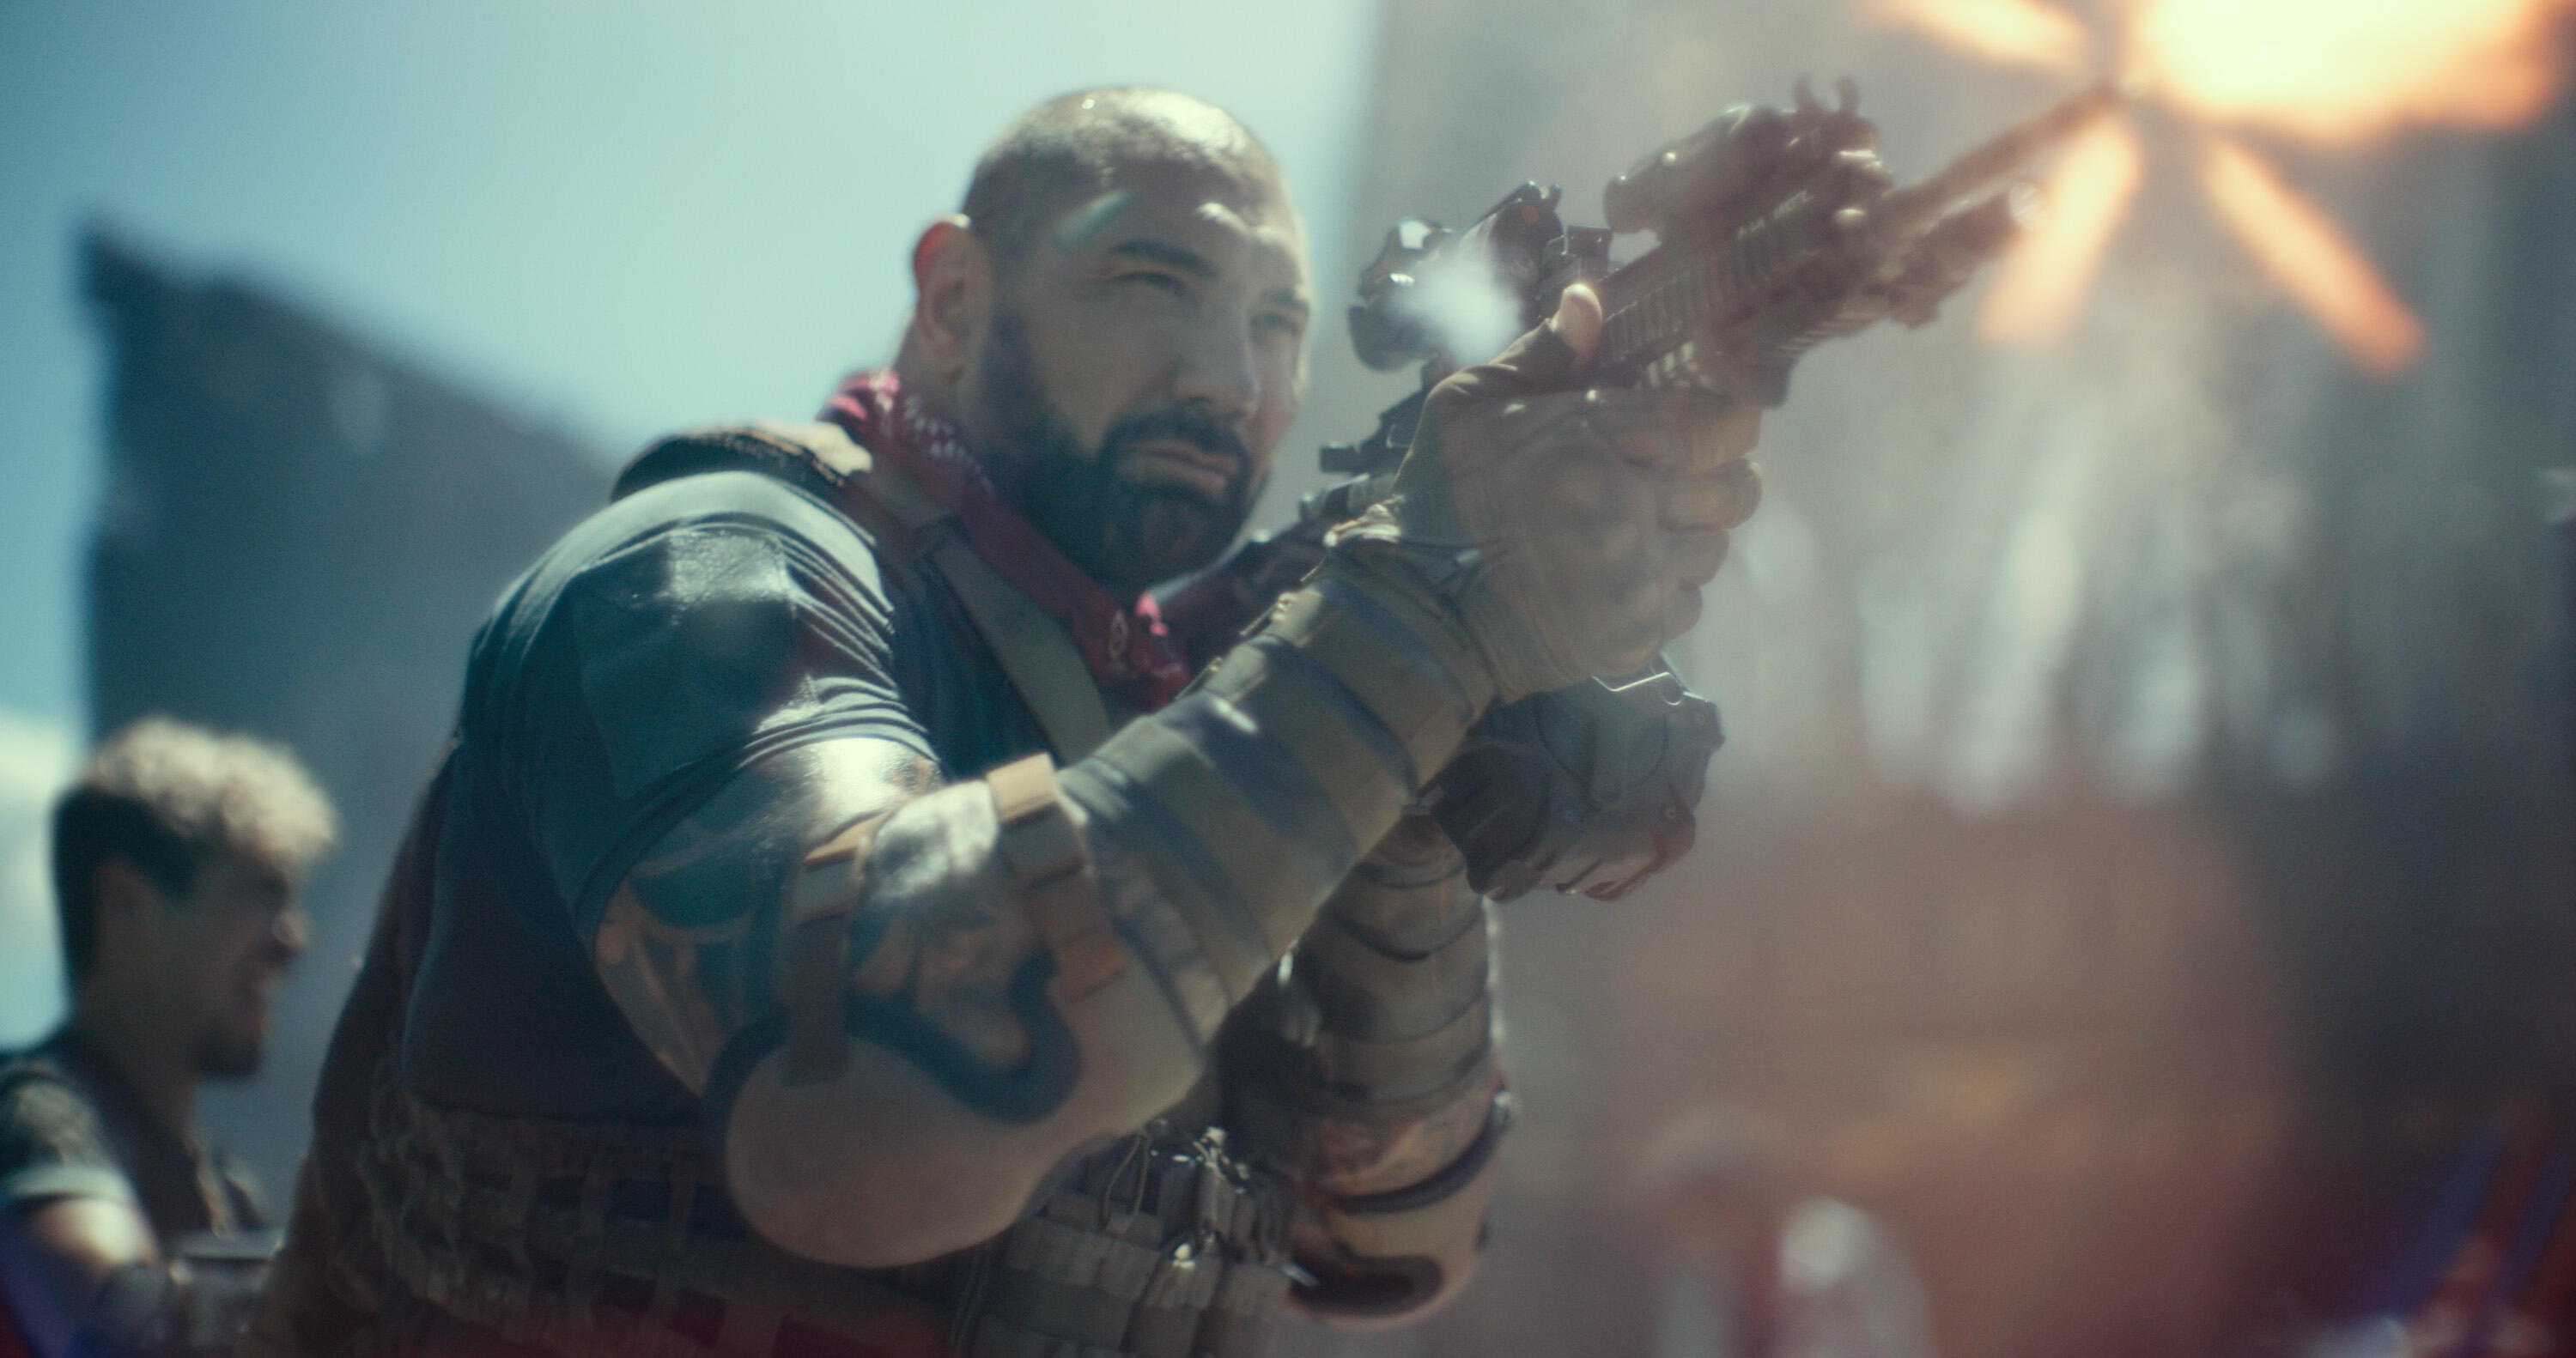 Army of the Dead review: A long splatterfest from Zack Snyder - CNET